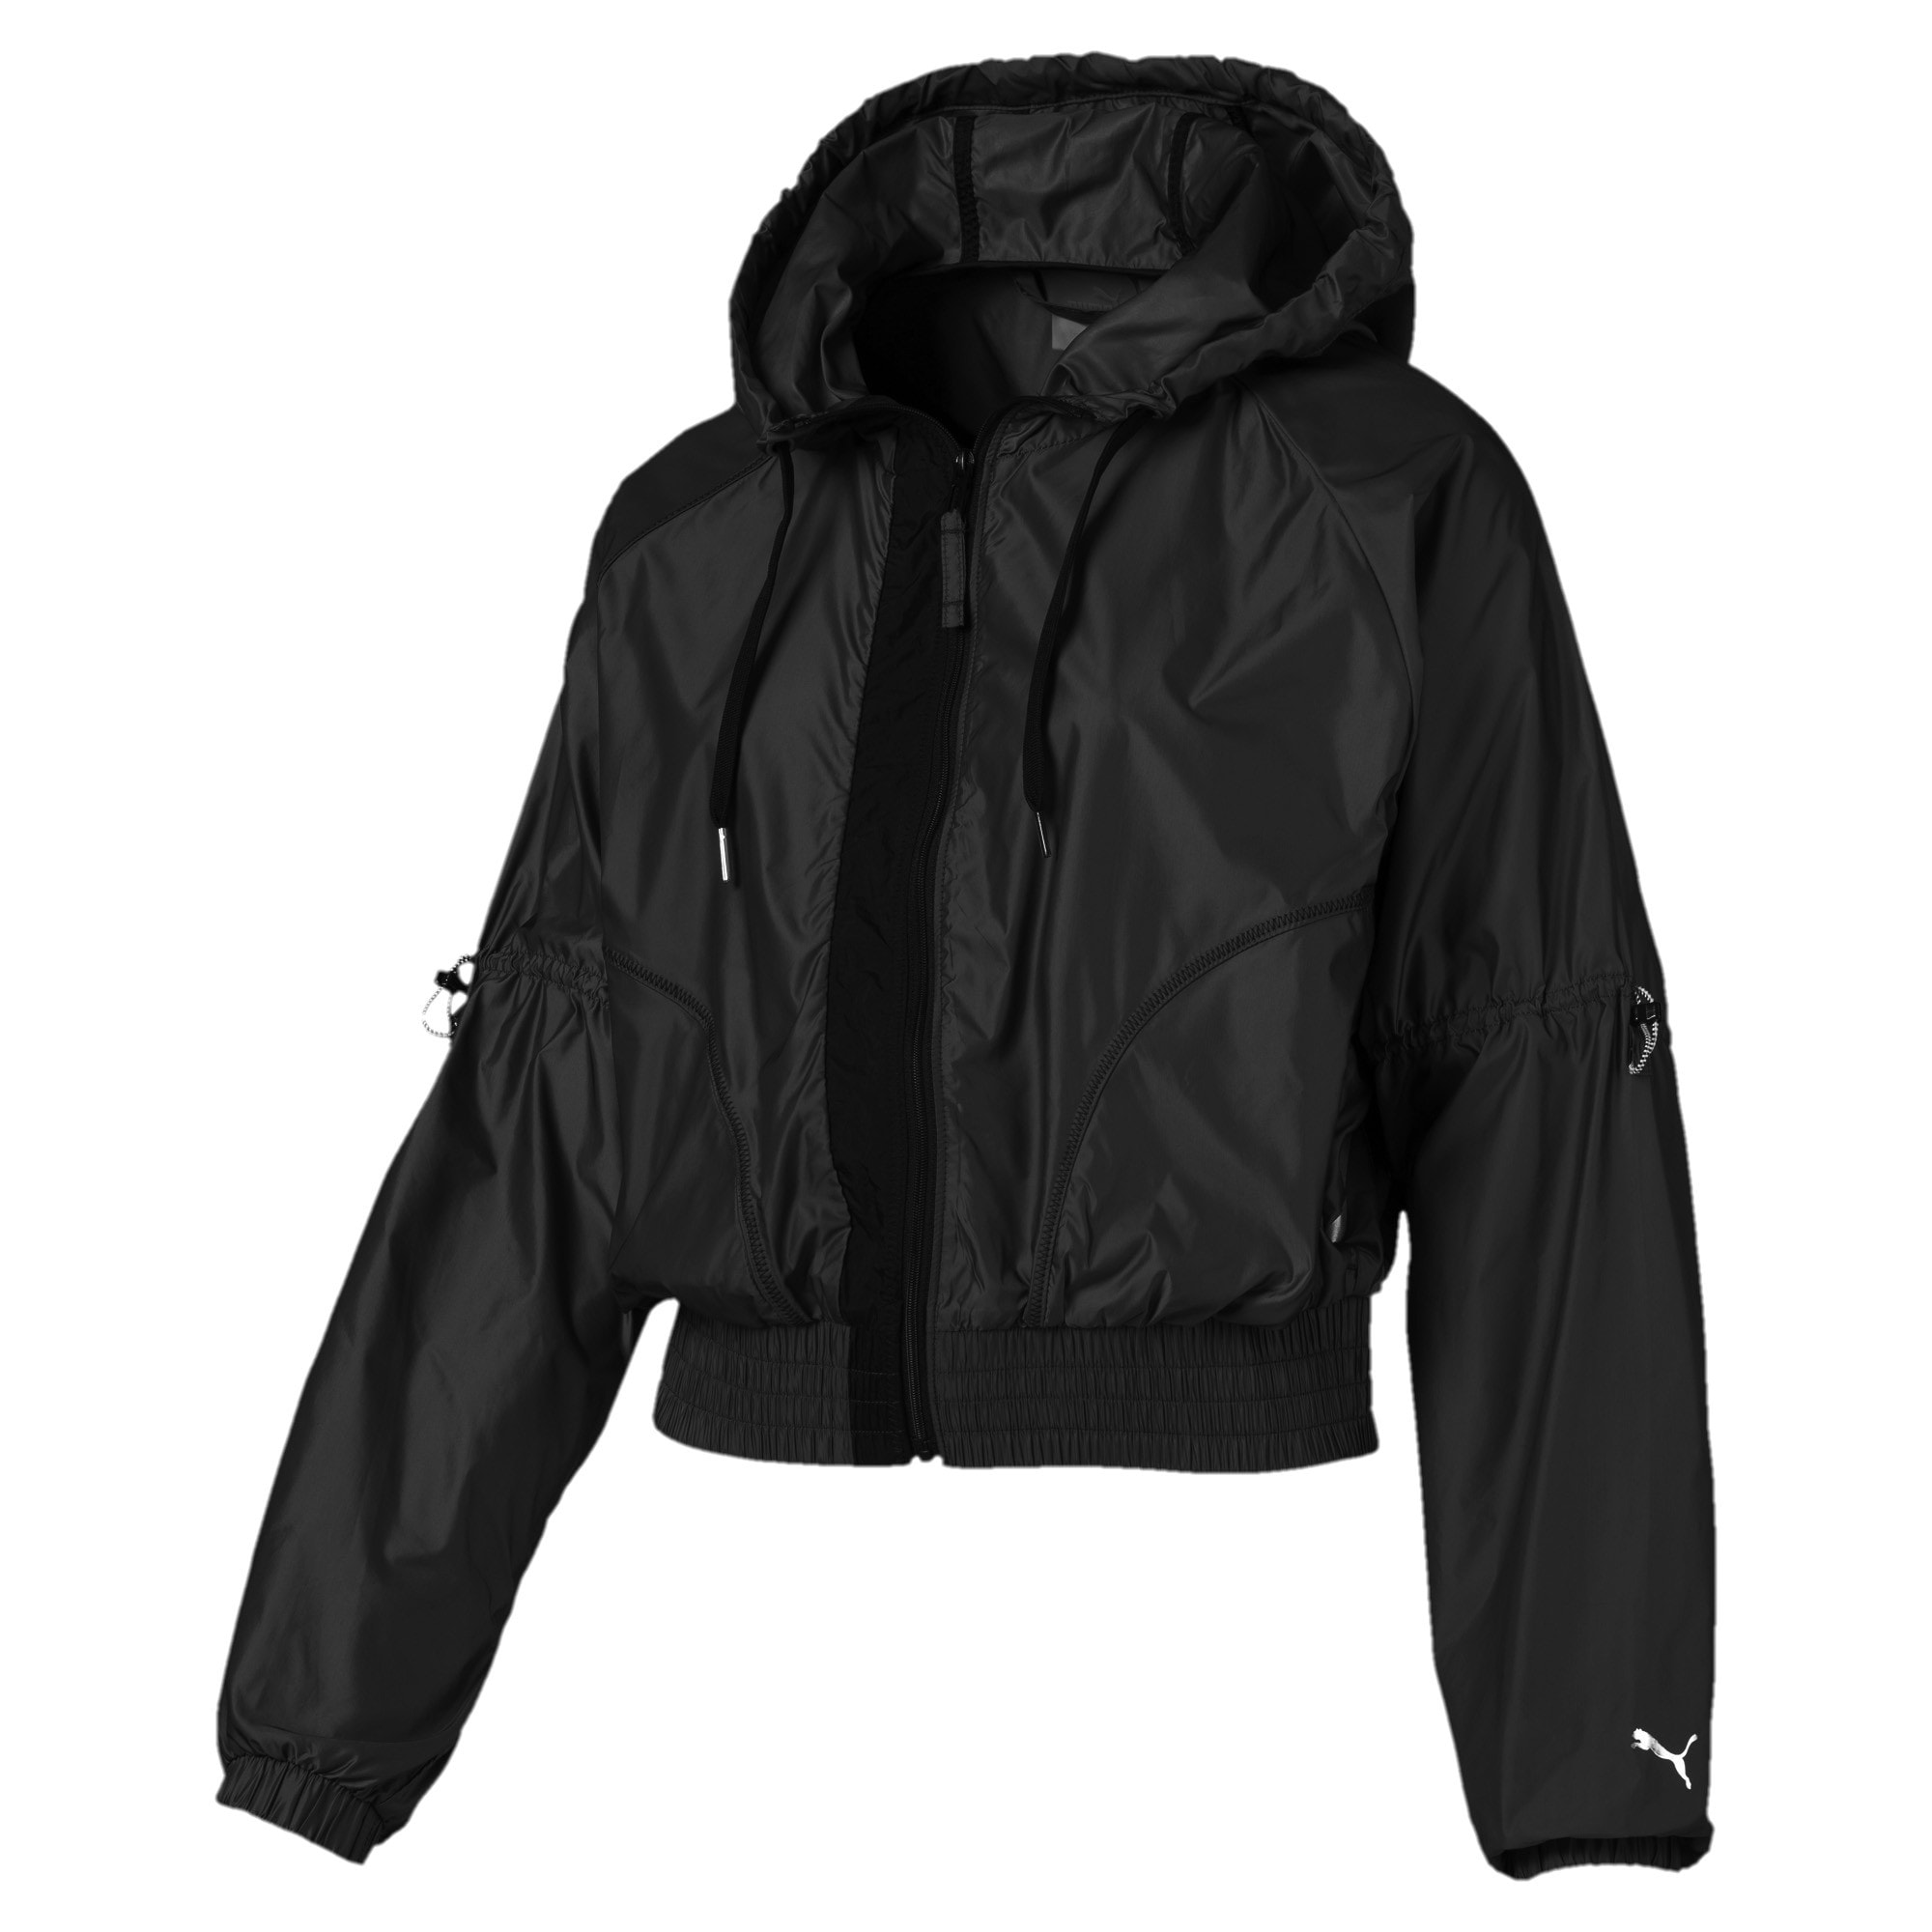 Thumbnail 4 of Cosmic Trailblazer Women's Jacket, Puma Black, medium